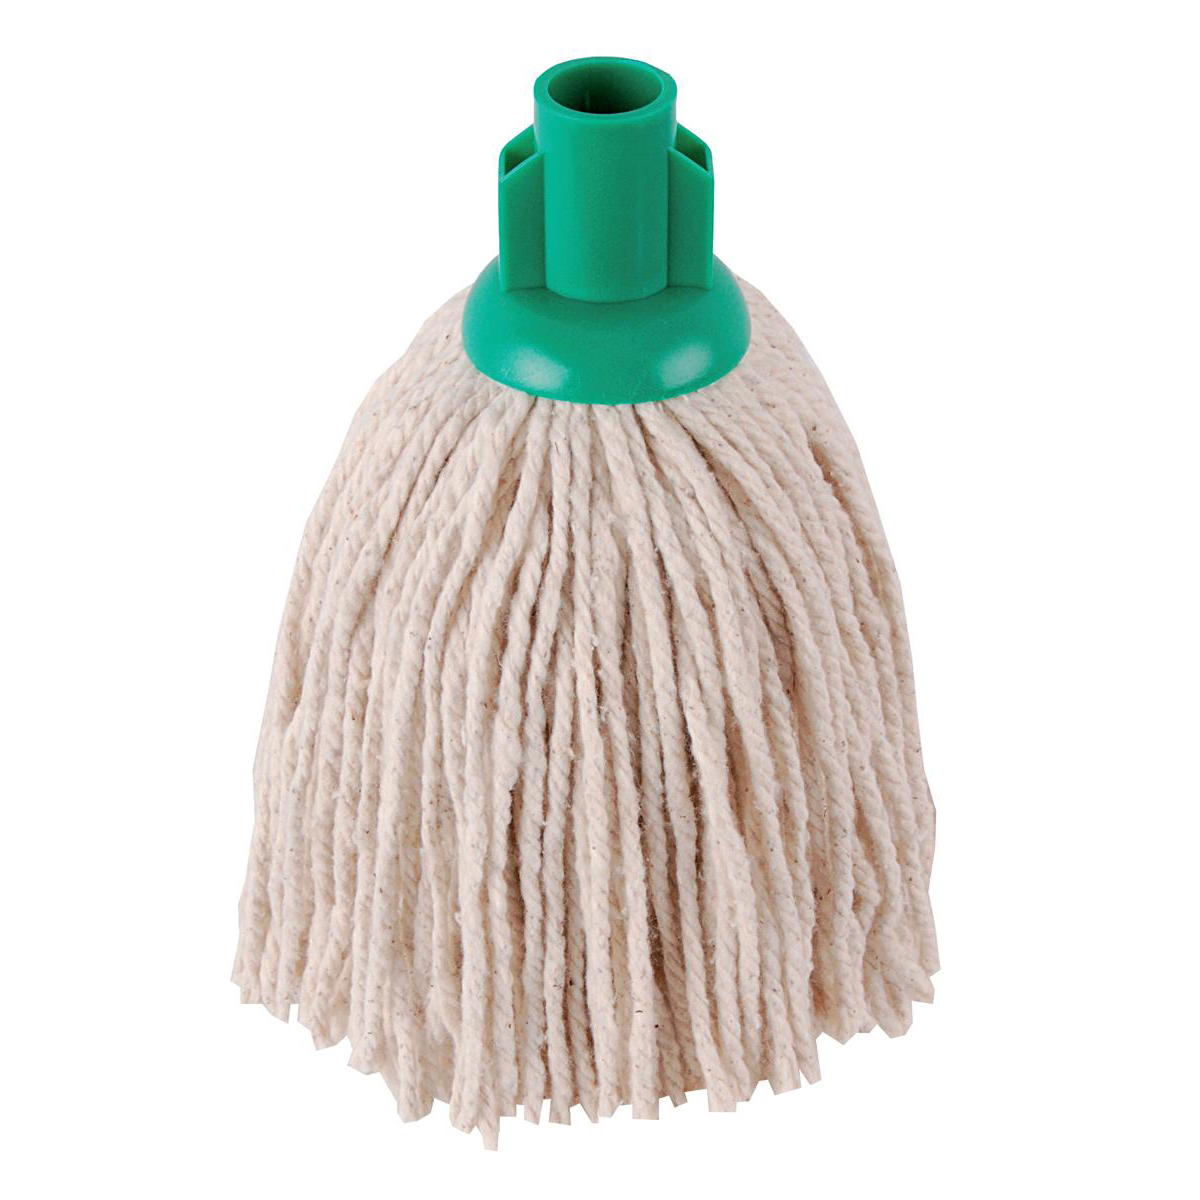 Robert Scott & Sons PY Socket Mop for Smooth Surfaces 12oz Green Ref 101870GREEN [Pack 10]